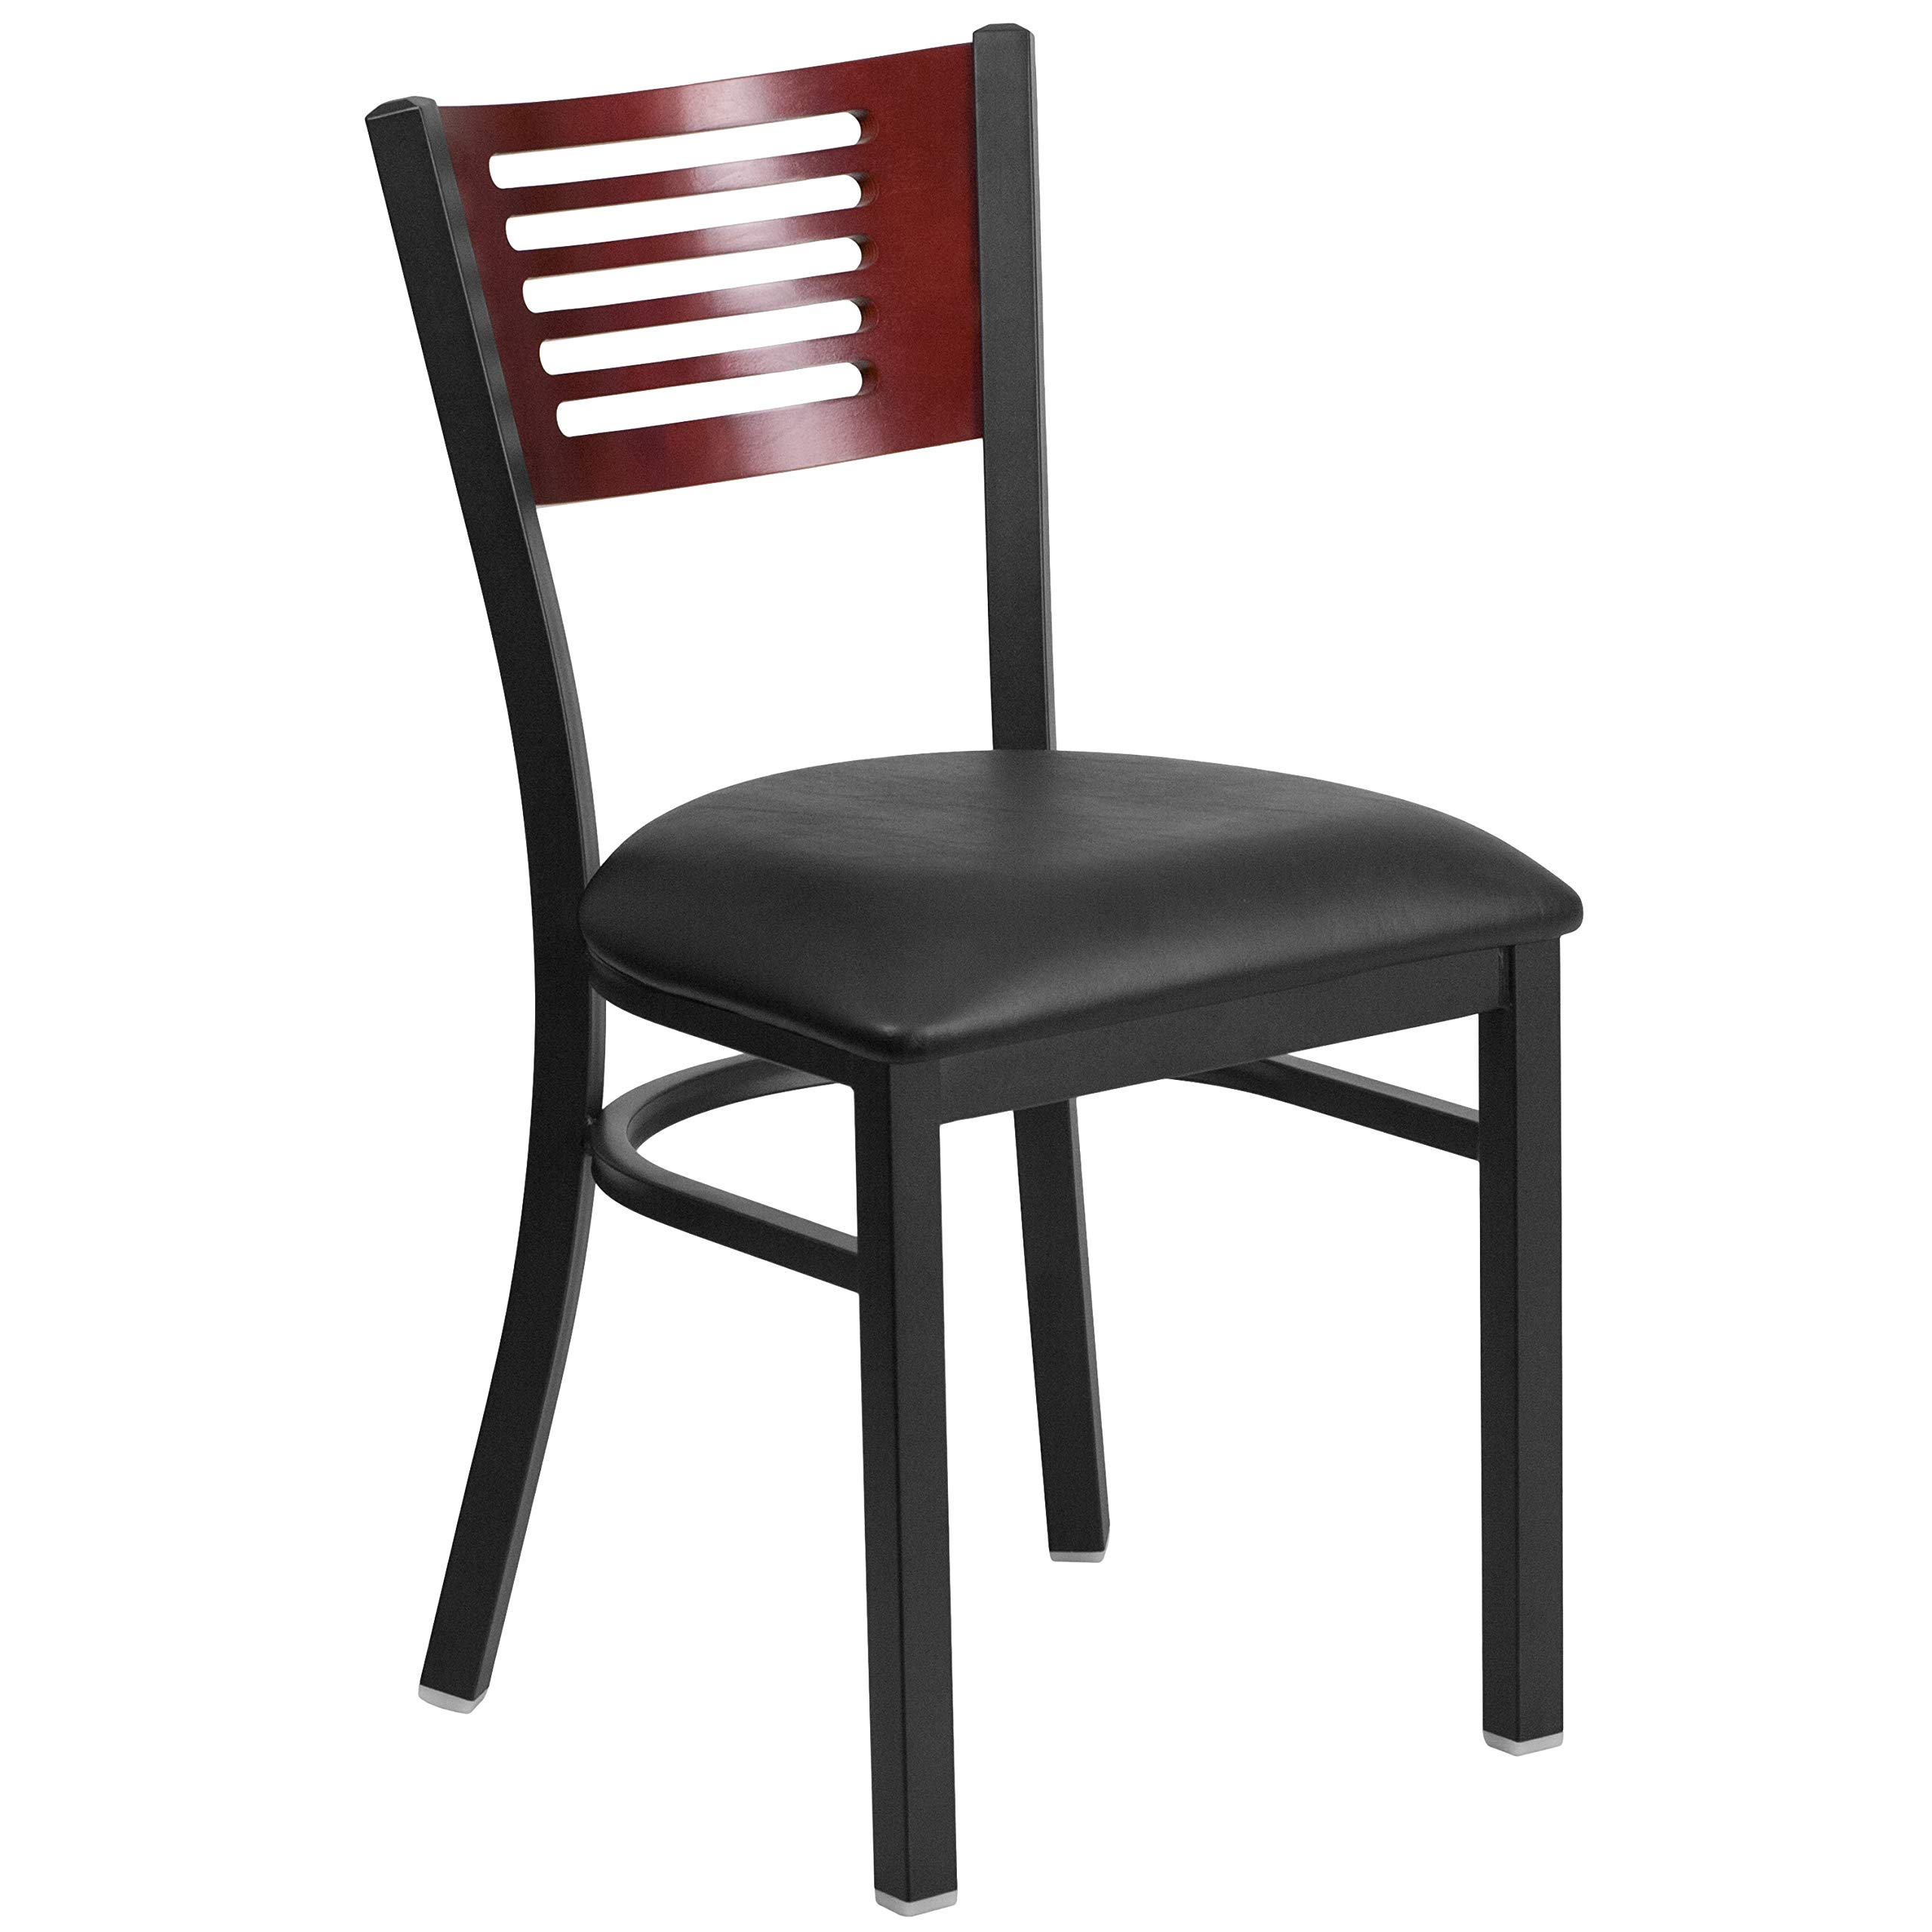 MFO Princeton Black Slat Back Metal Restaurant Chair - Mahogany Wood Back, Black Vinyl Seat by My Friendly Office